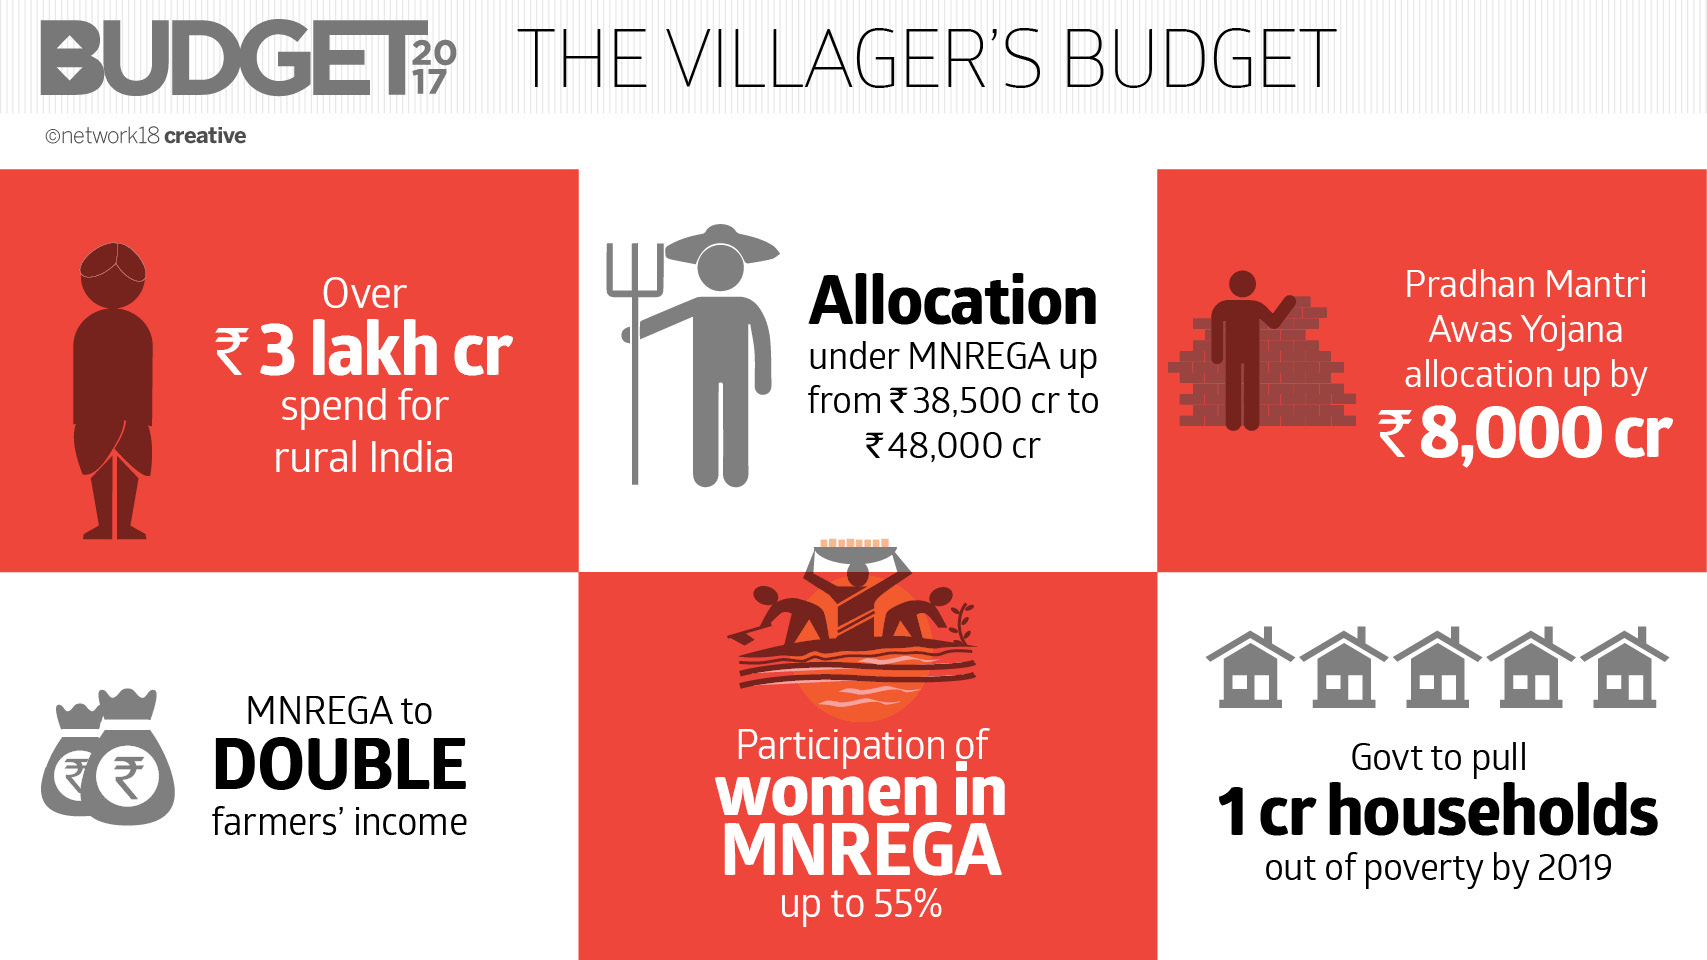 THE Villager's BUDGET_A